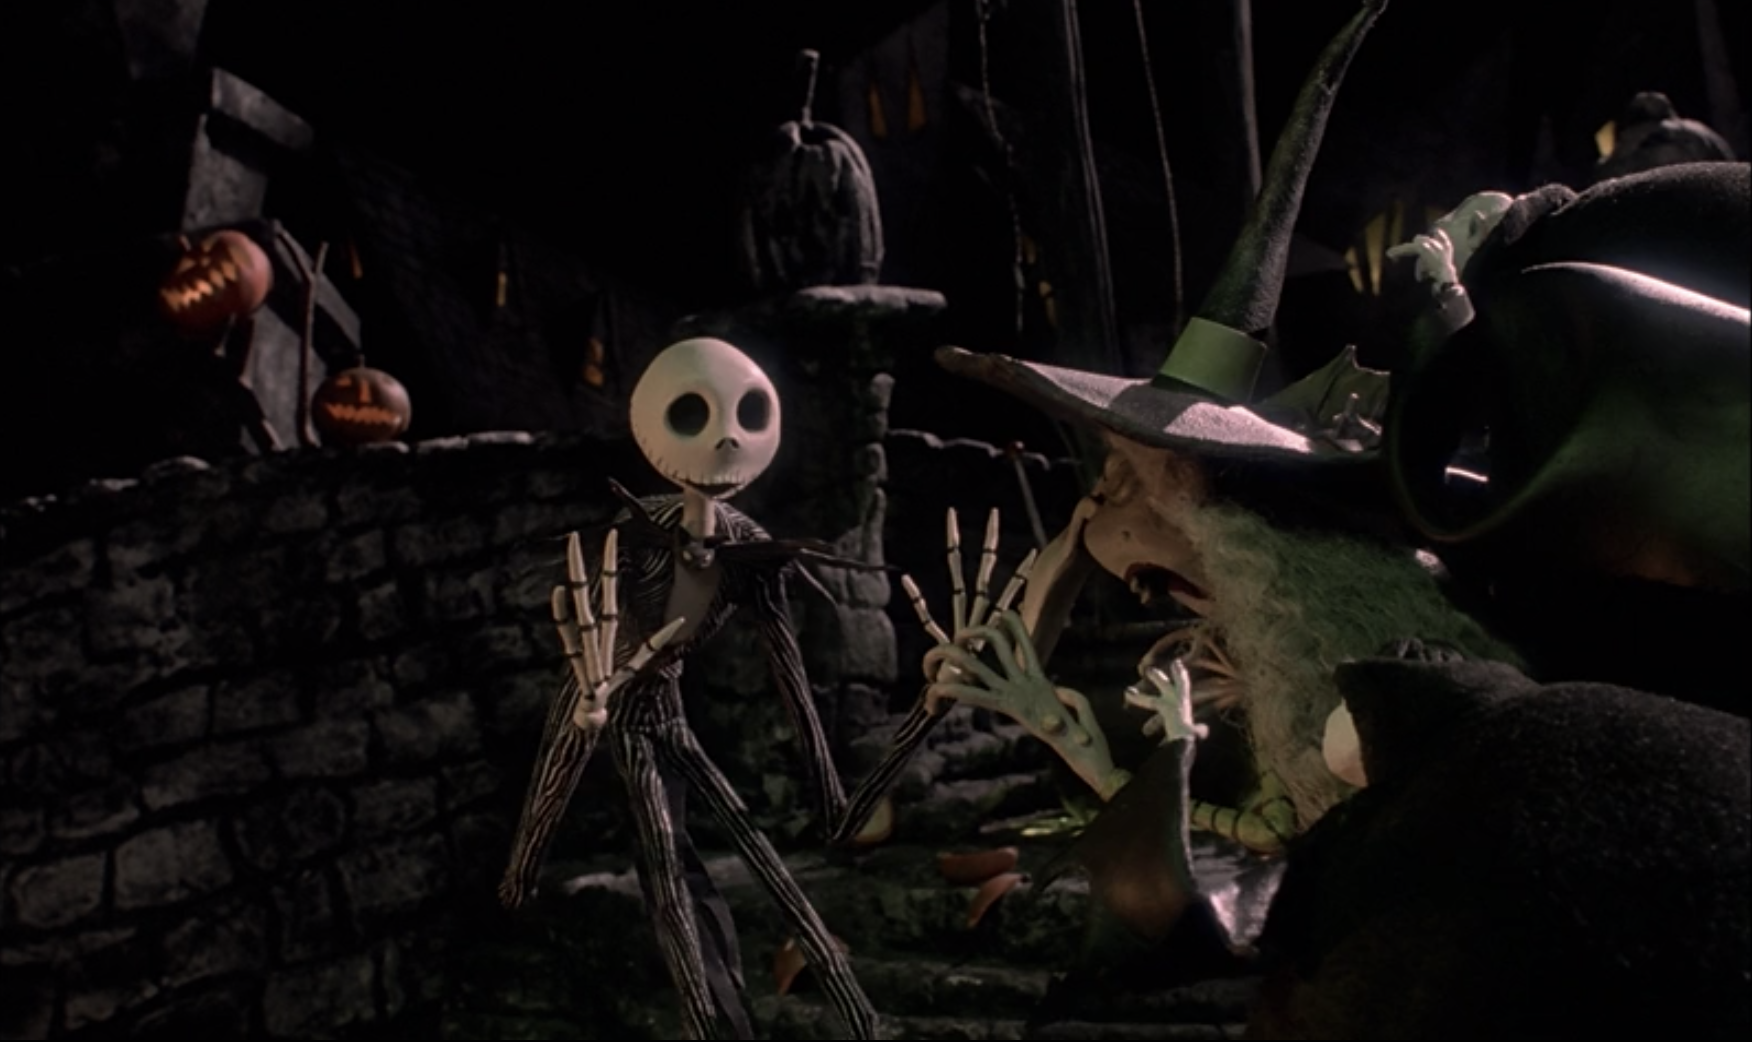 Jack Skellington among the people of Halloween Town.